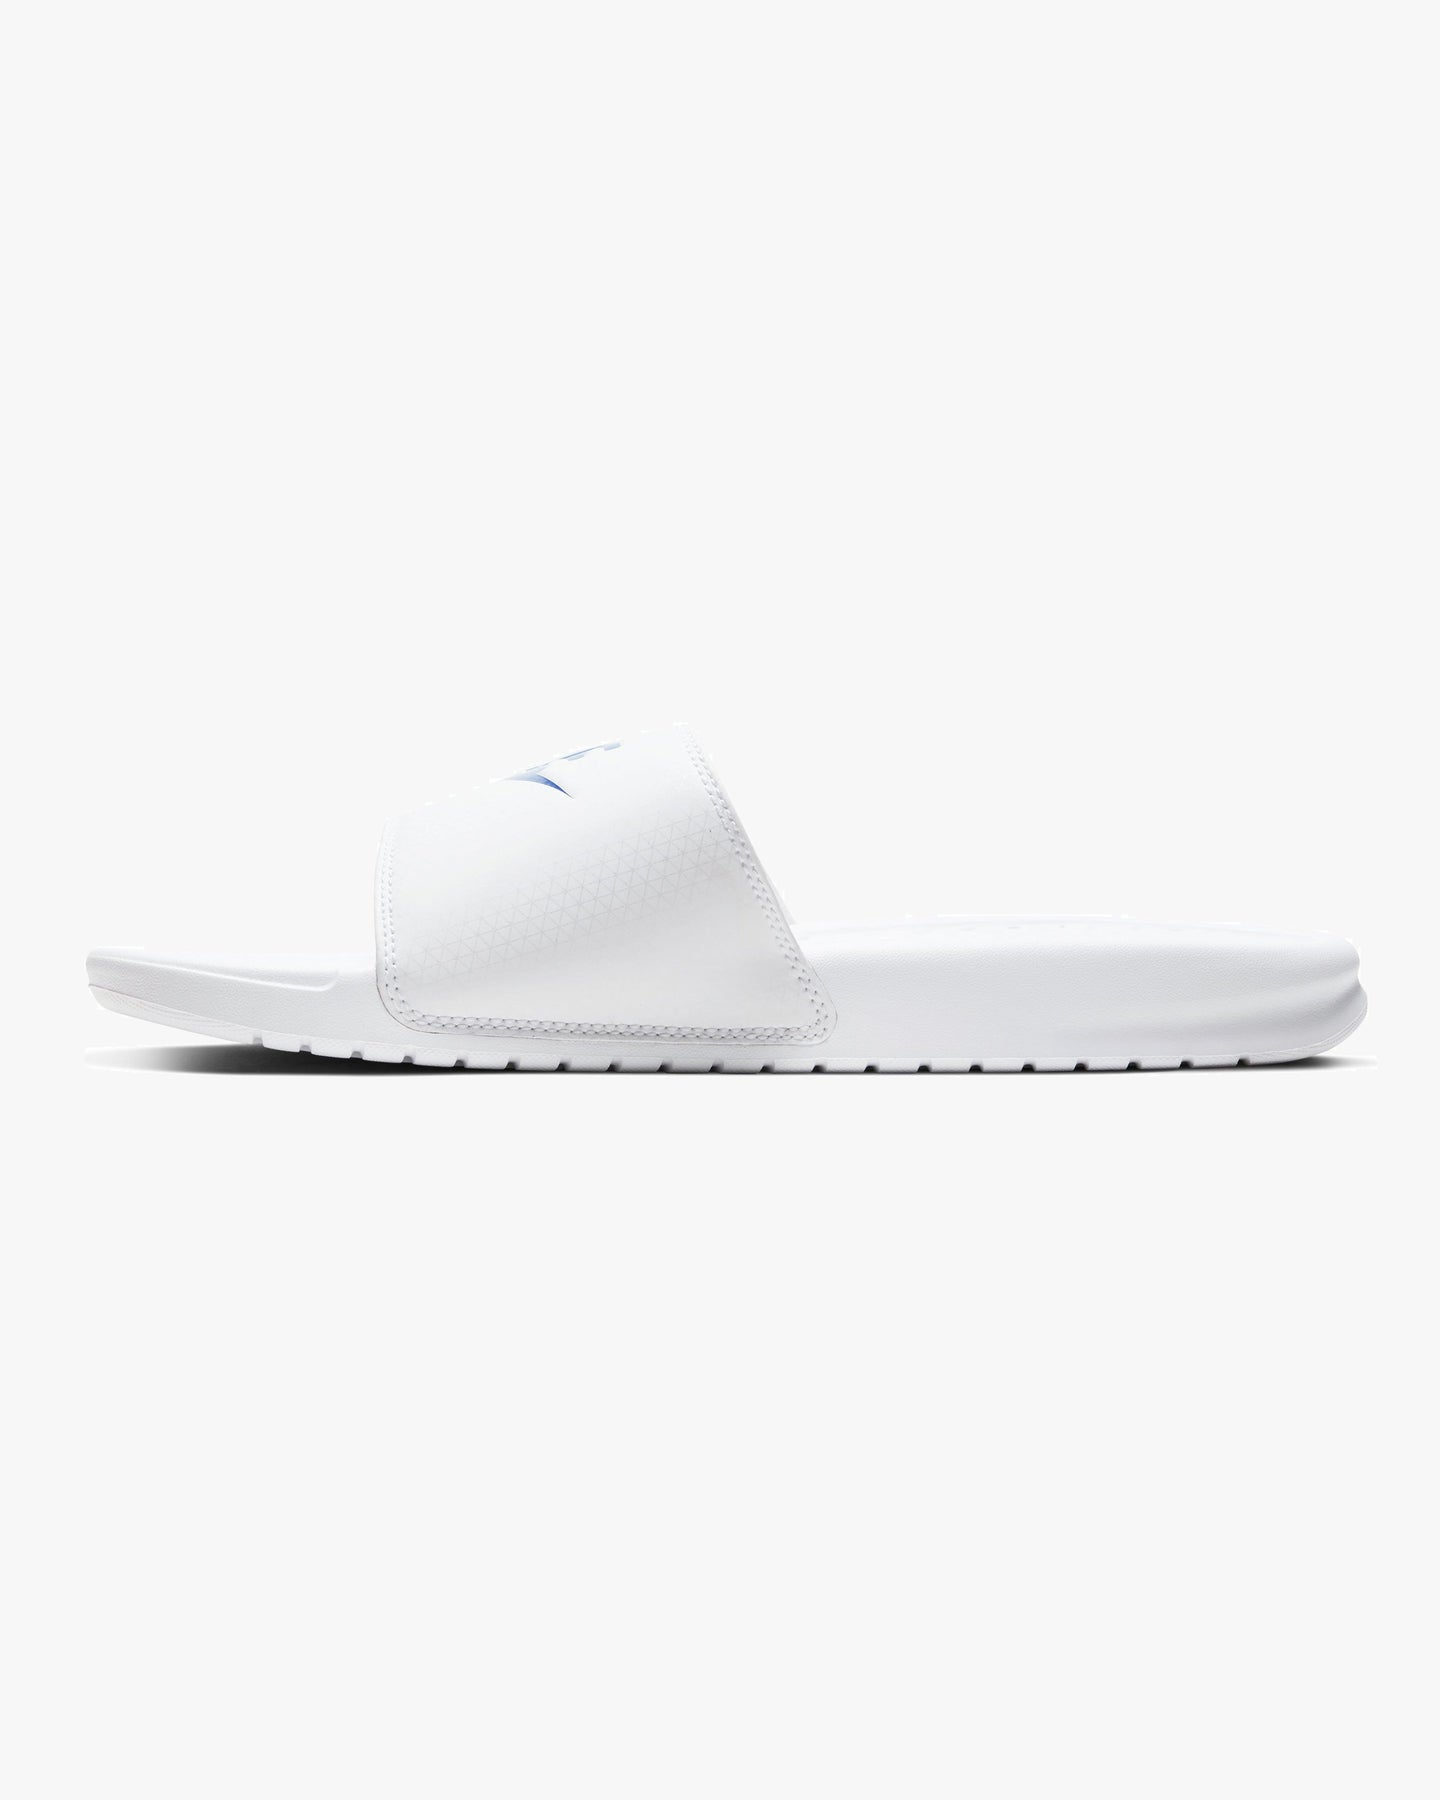 Nike Benassi JDI Sliders - White / Varsity Royal UK 6 3438801026 666003215287 Nike Flip Flops & Sliders Nike Benassi JDI Sliders - White / Varsity Royal - Jeans and Street Fashion from Jeanstore